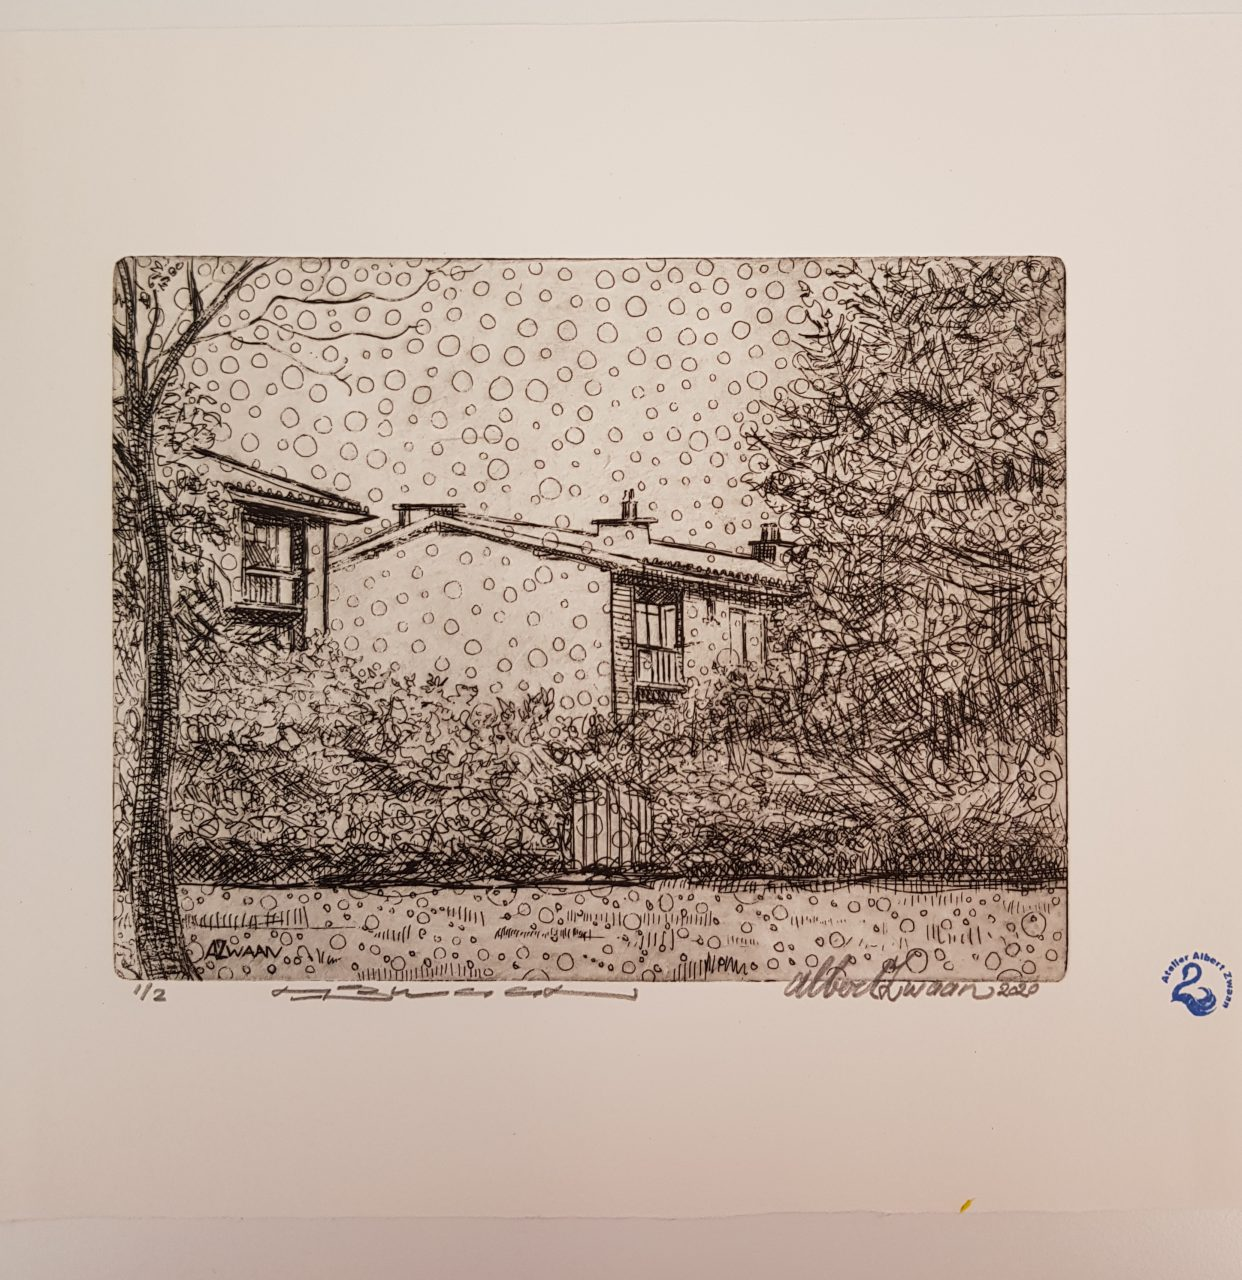 Huizen in Oud Krispijn, 2020. Etching on Hahnemuhle paper 15x19,5cm